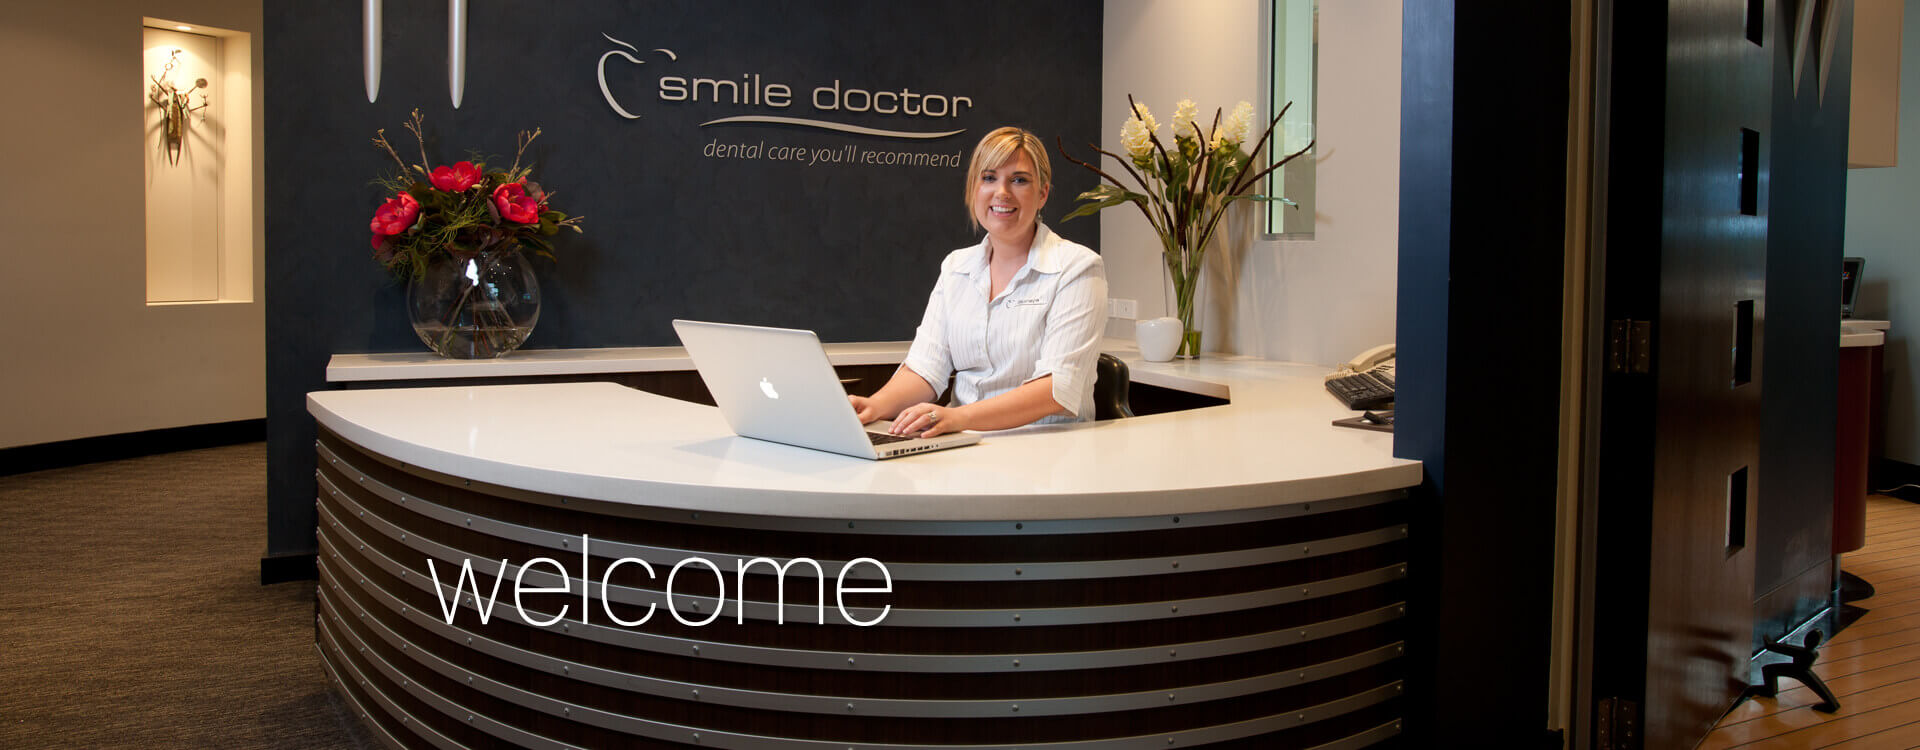 Smile-Doctor-Front-Desk-and-Reception-Image